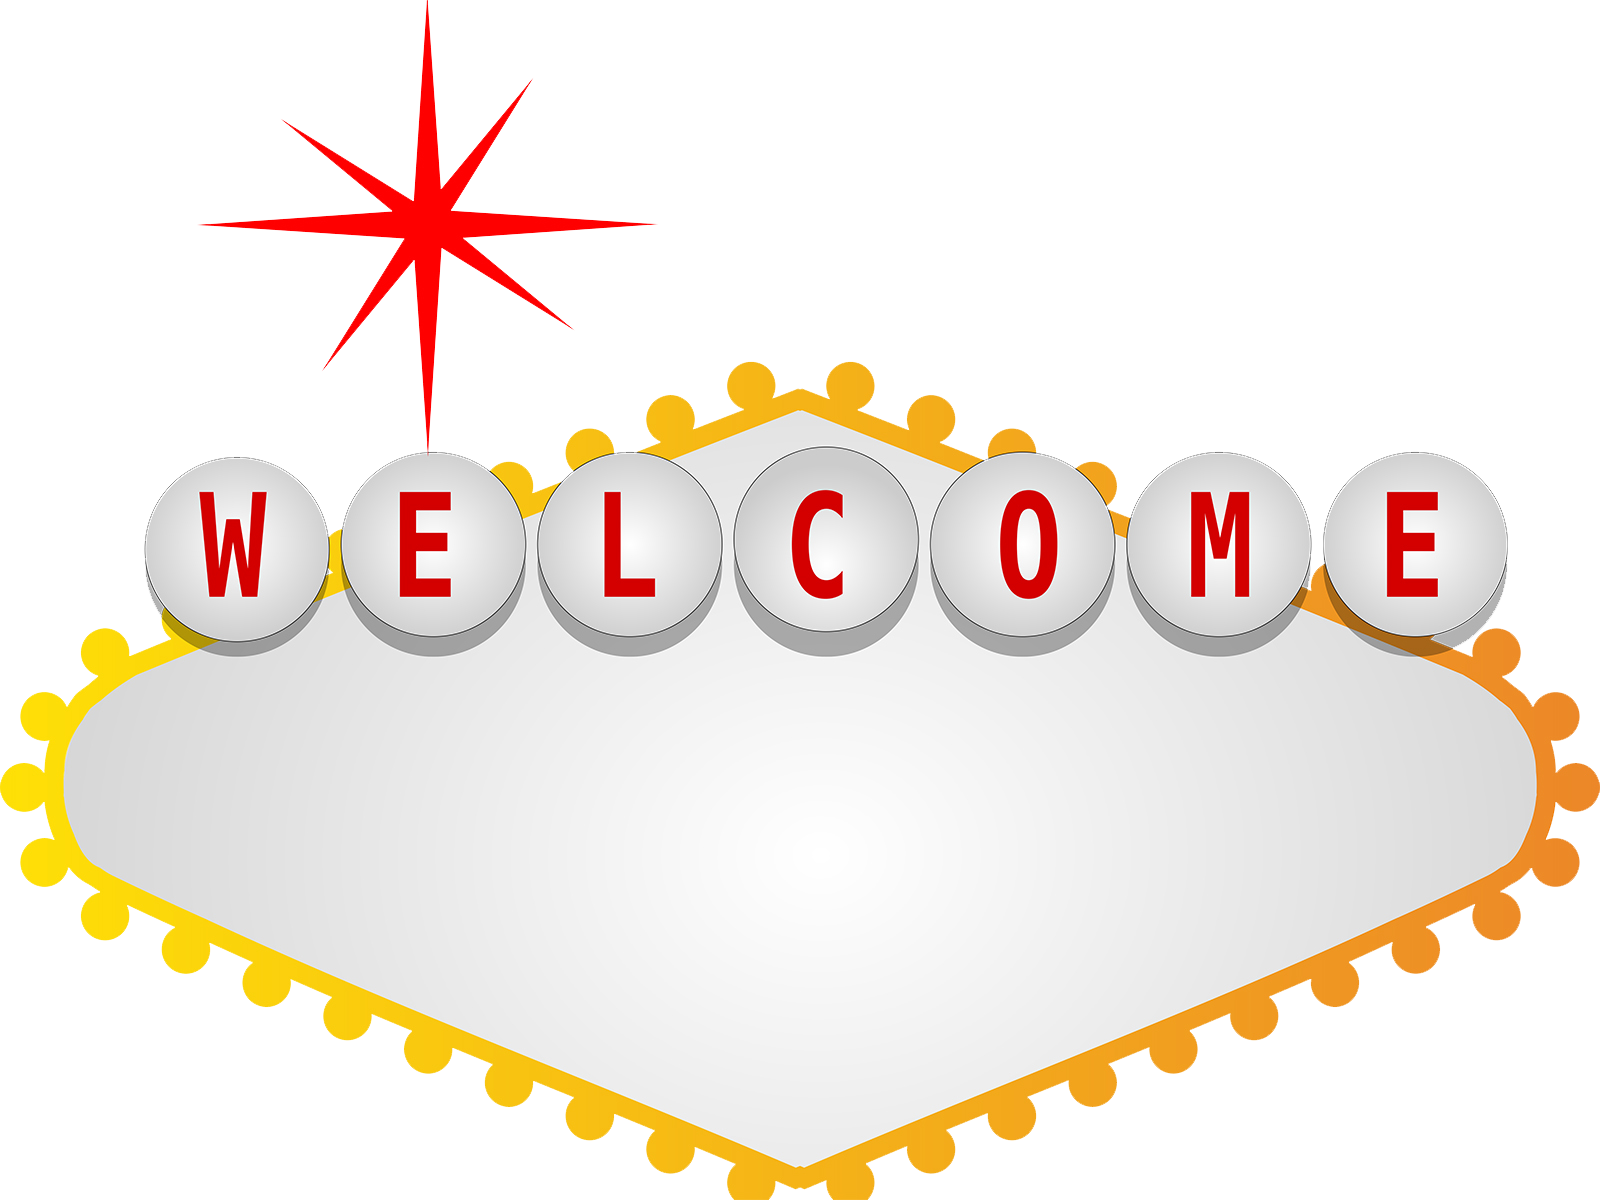 Las vegas welcome sign clipart picture free download Welcome To Fabulous Las Vegas Sign Png - Las Vegas Sign Transparent ... picture free download